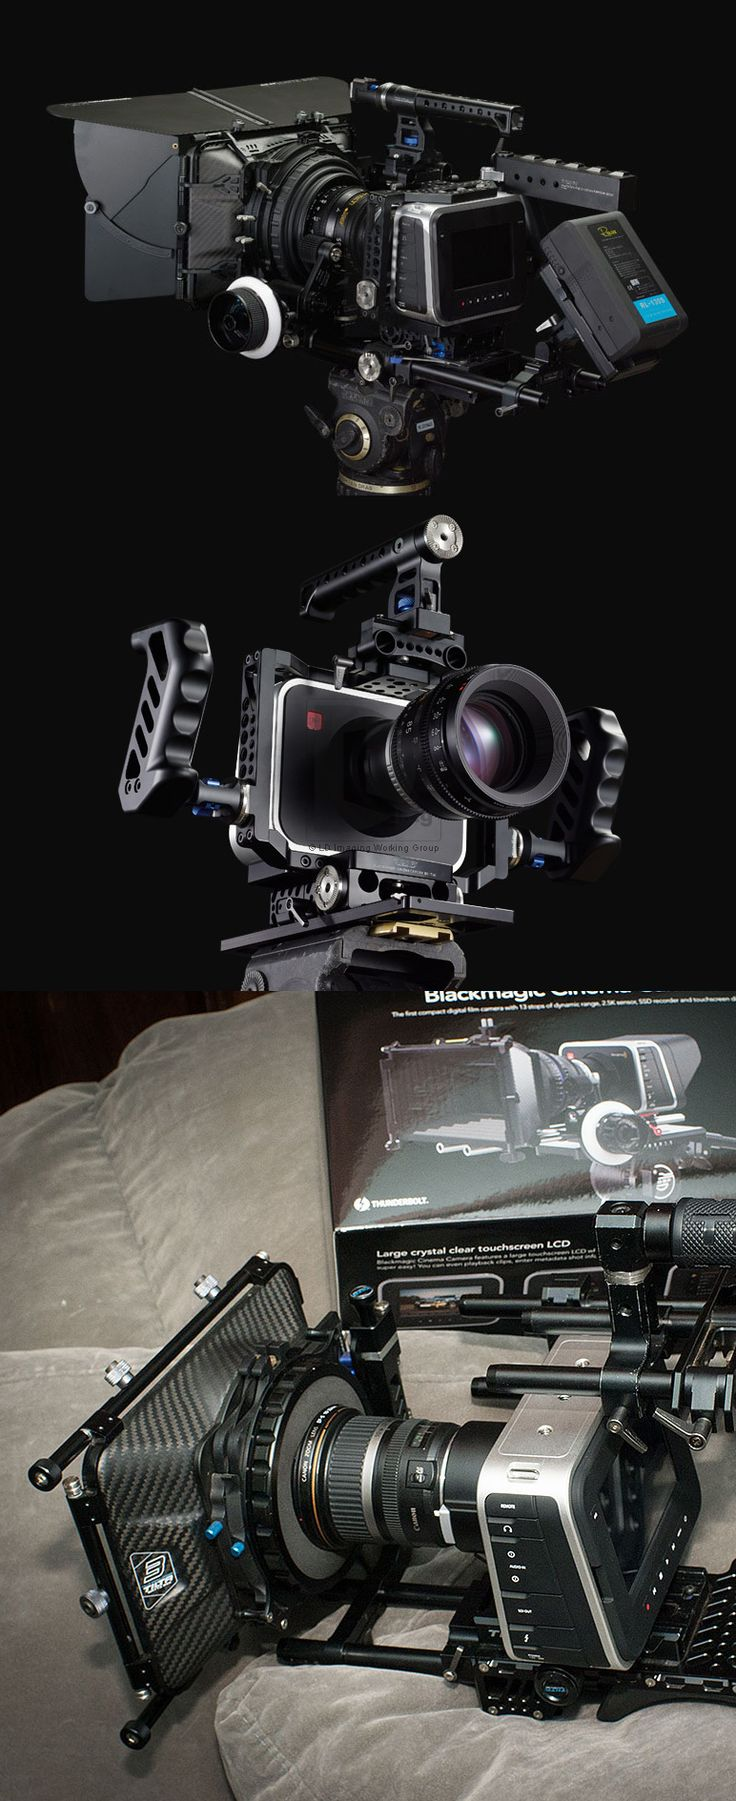 Appreciation for Camera: As a photographer, this is one of my best treasures that I own ,I call it the Black Magic ,cool ,huh?Do you like it as much as me? I find it here:http://goo.gl/SiGD50  Tilta TT-BMC-07 BMCC Camera Support Rig Kit for BlackMagic Cinema Camera (Shoulder Rig)